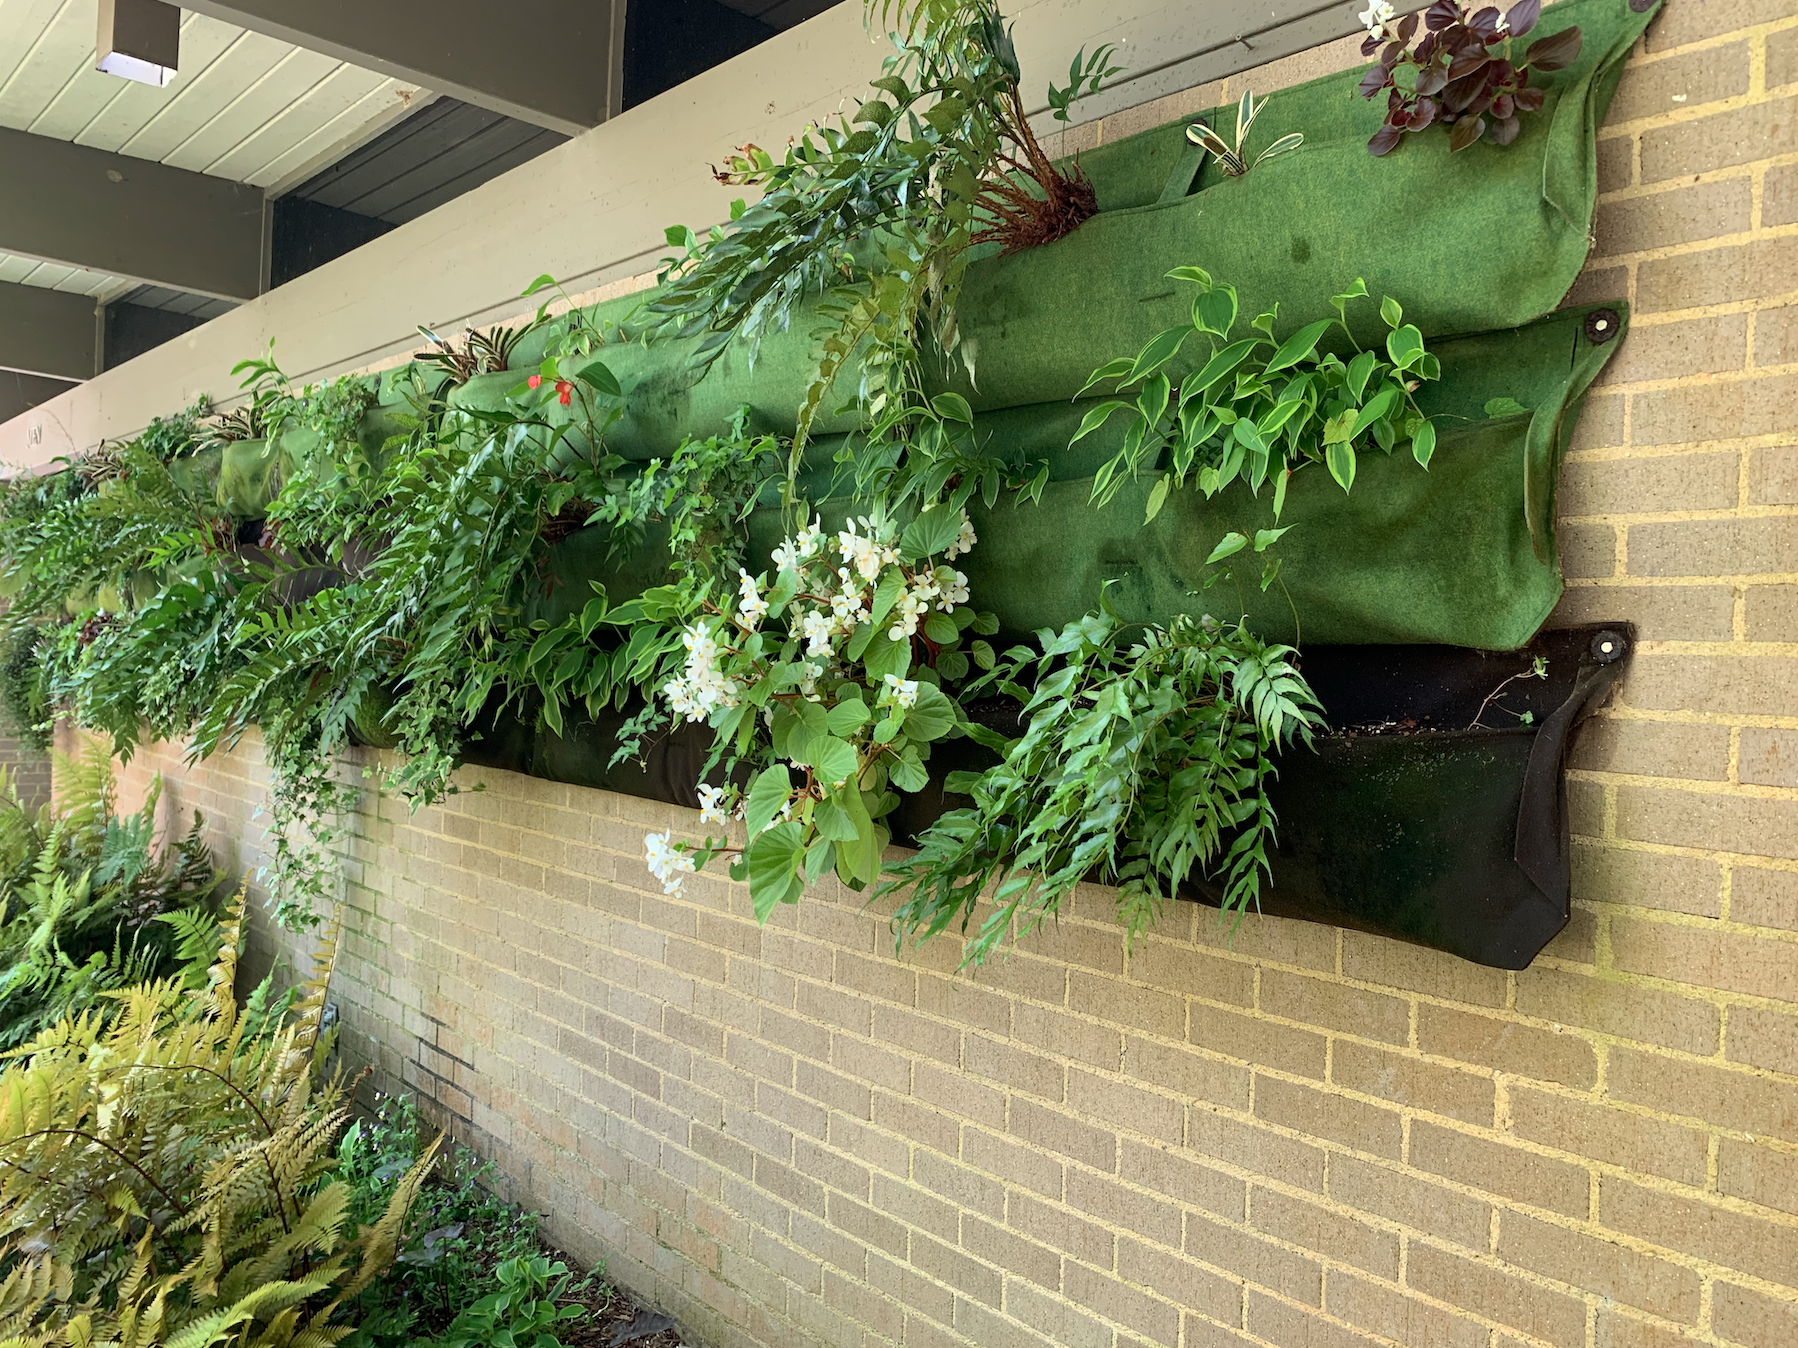 A hanging container display against a brick wall with plants spilling over. The display has three rows of fabric containers. The top row is light green, the middle is dark green, and the bottom is black.